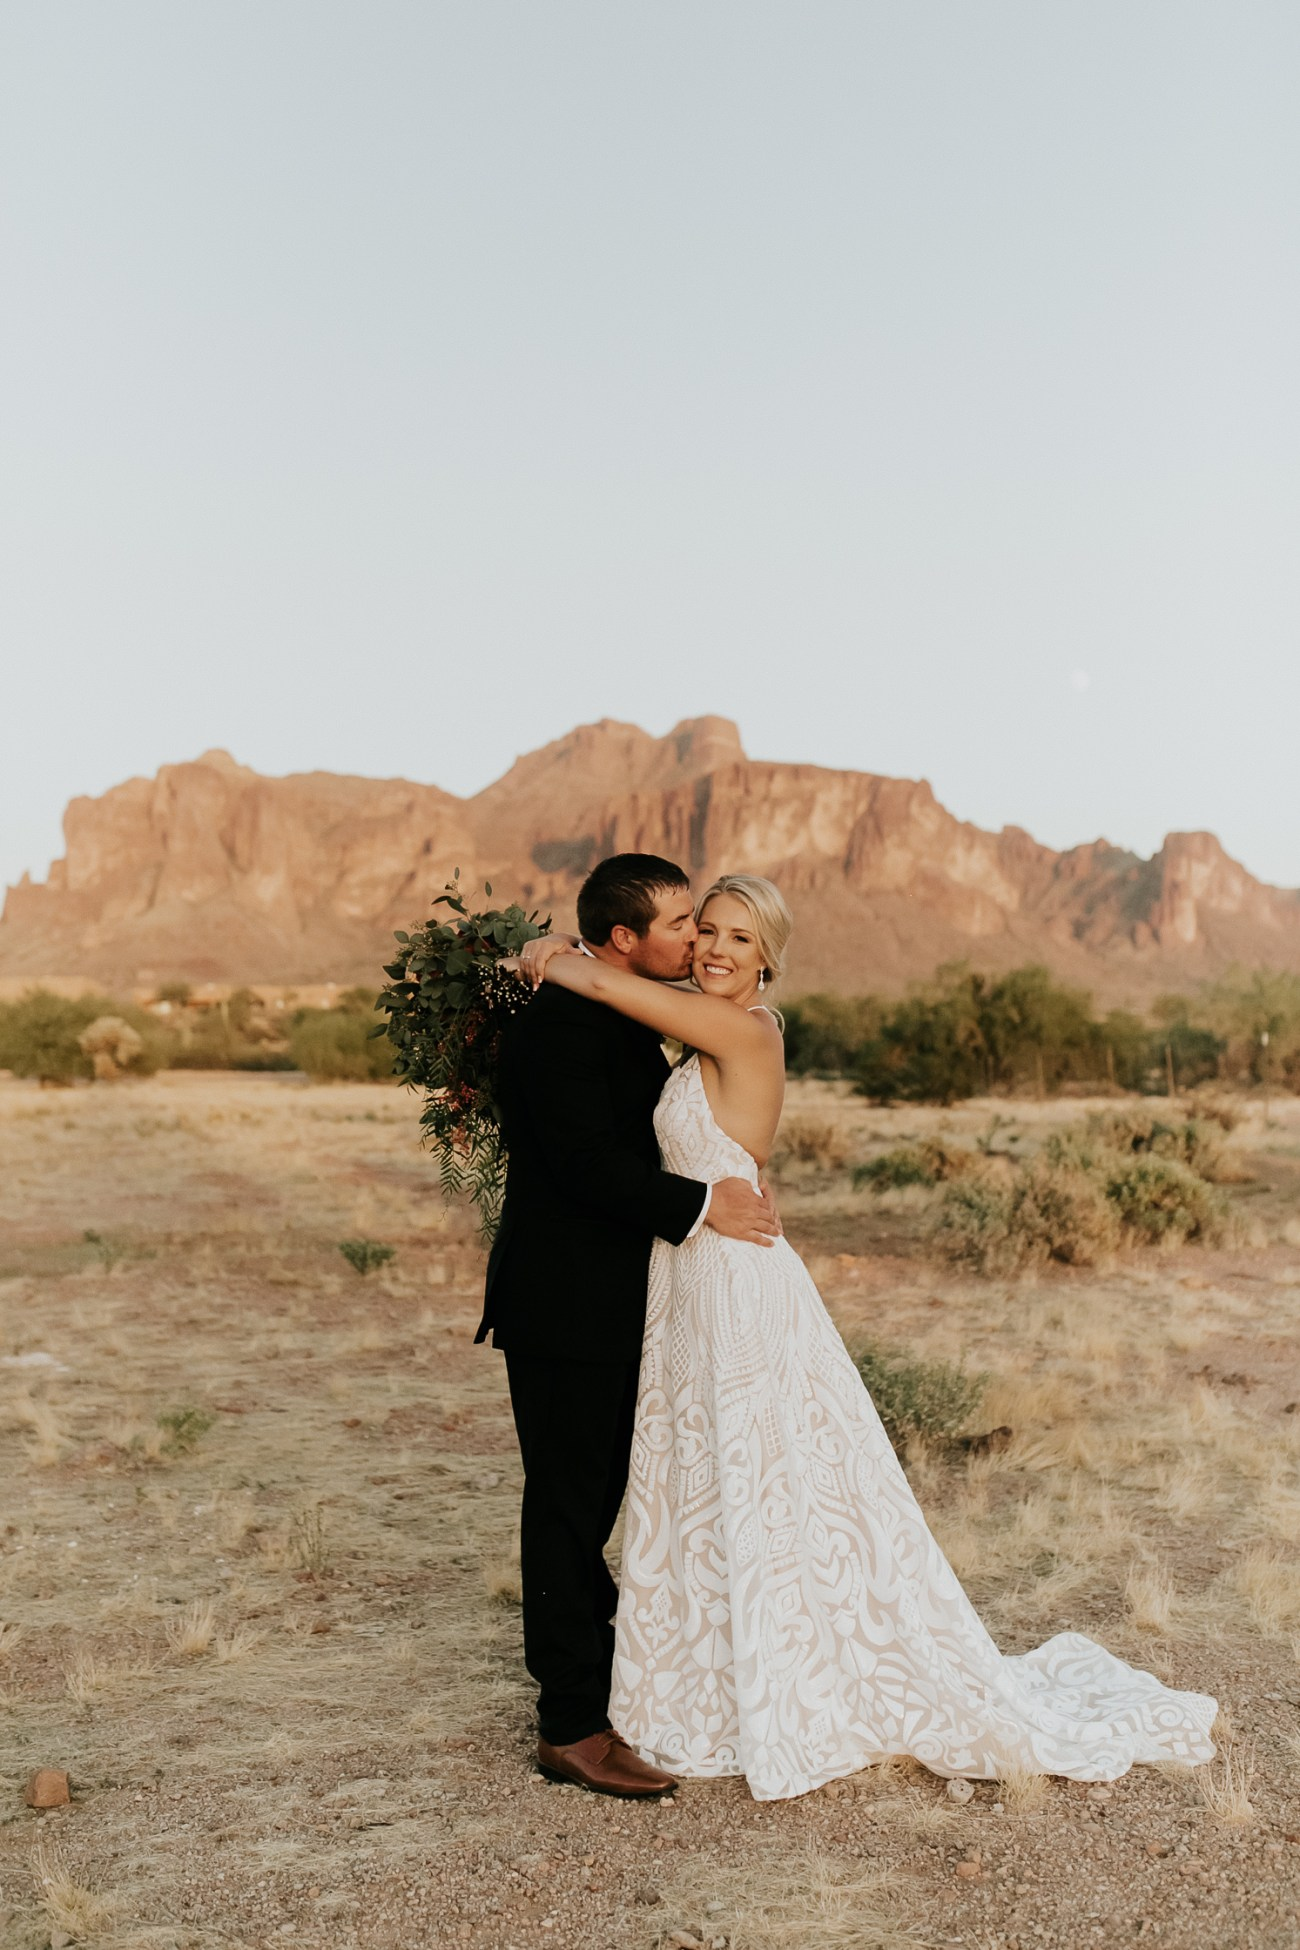 Megan Claire Photography | Arizona Wedding Photographer. Beautiful fall wedding in the desert at the Paseo in Apache Junction, Arizona near superstition mountains. desert bride and groom photos @meganclairephoto